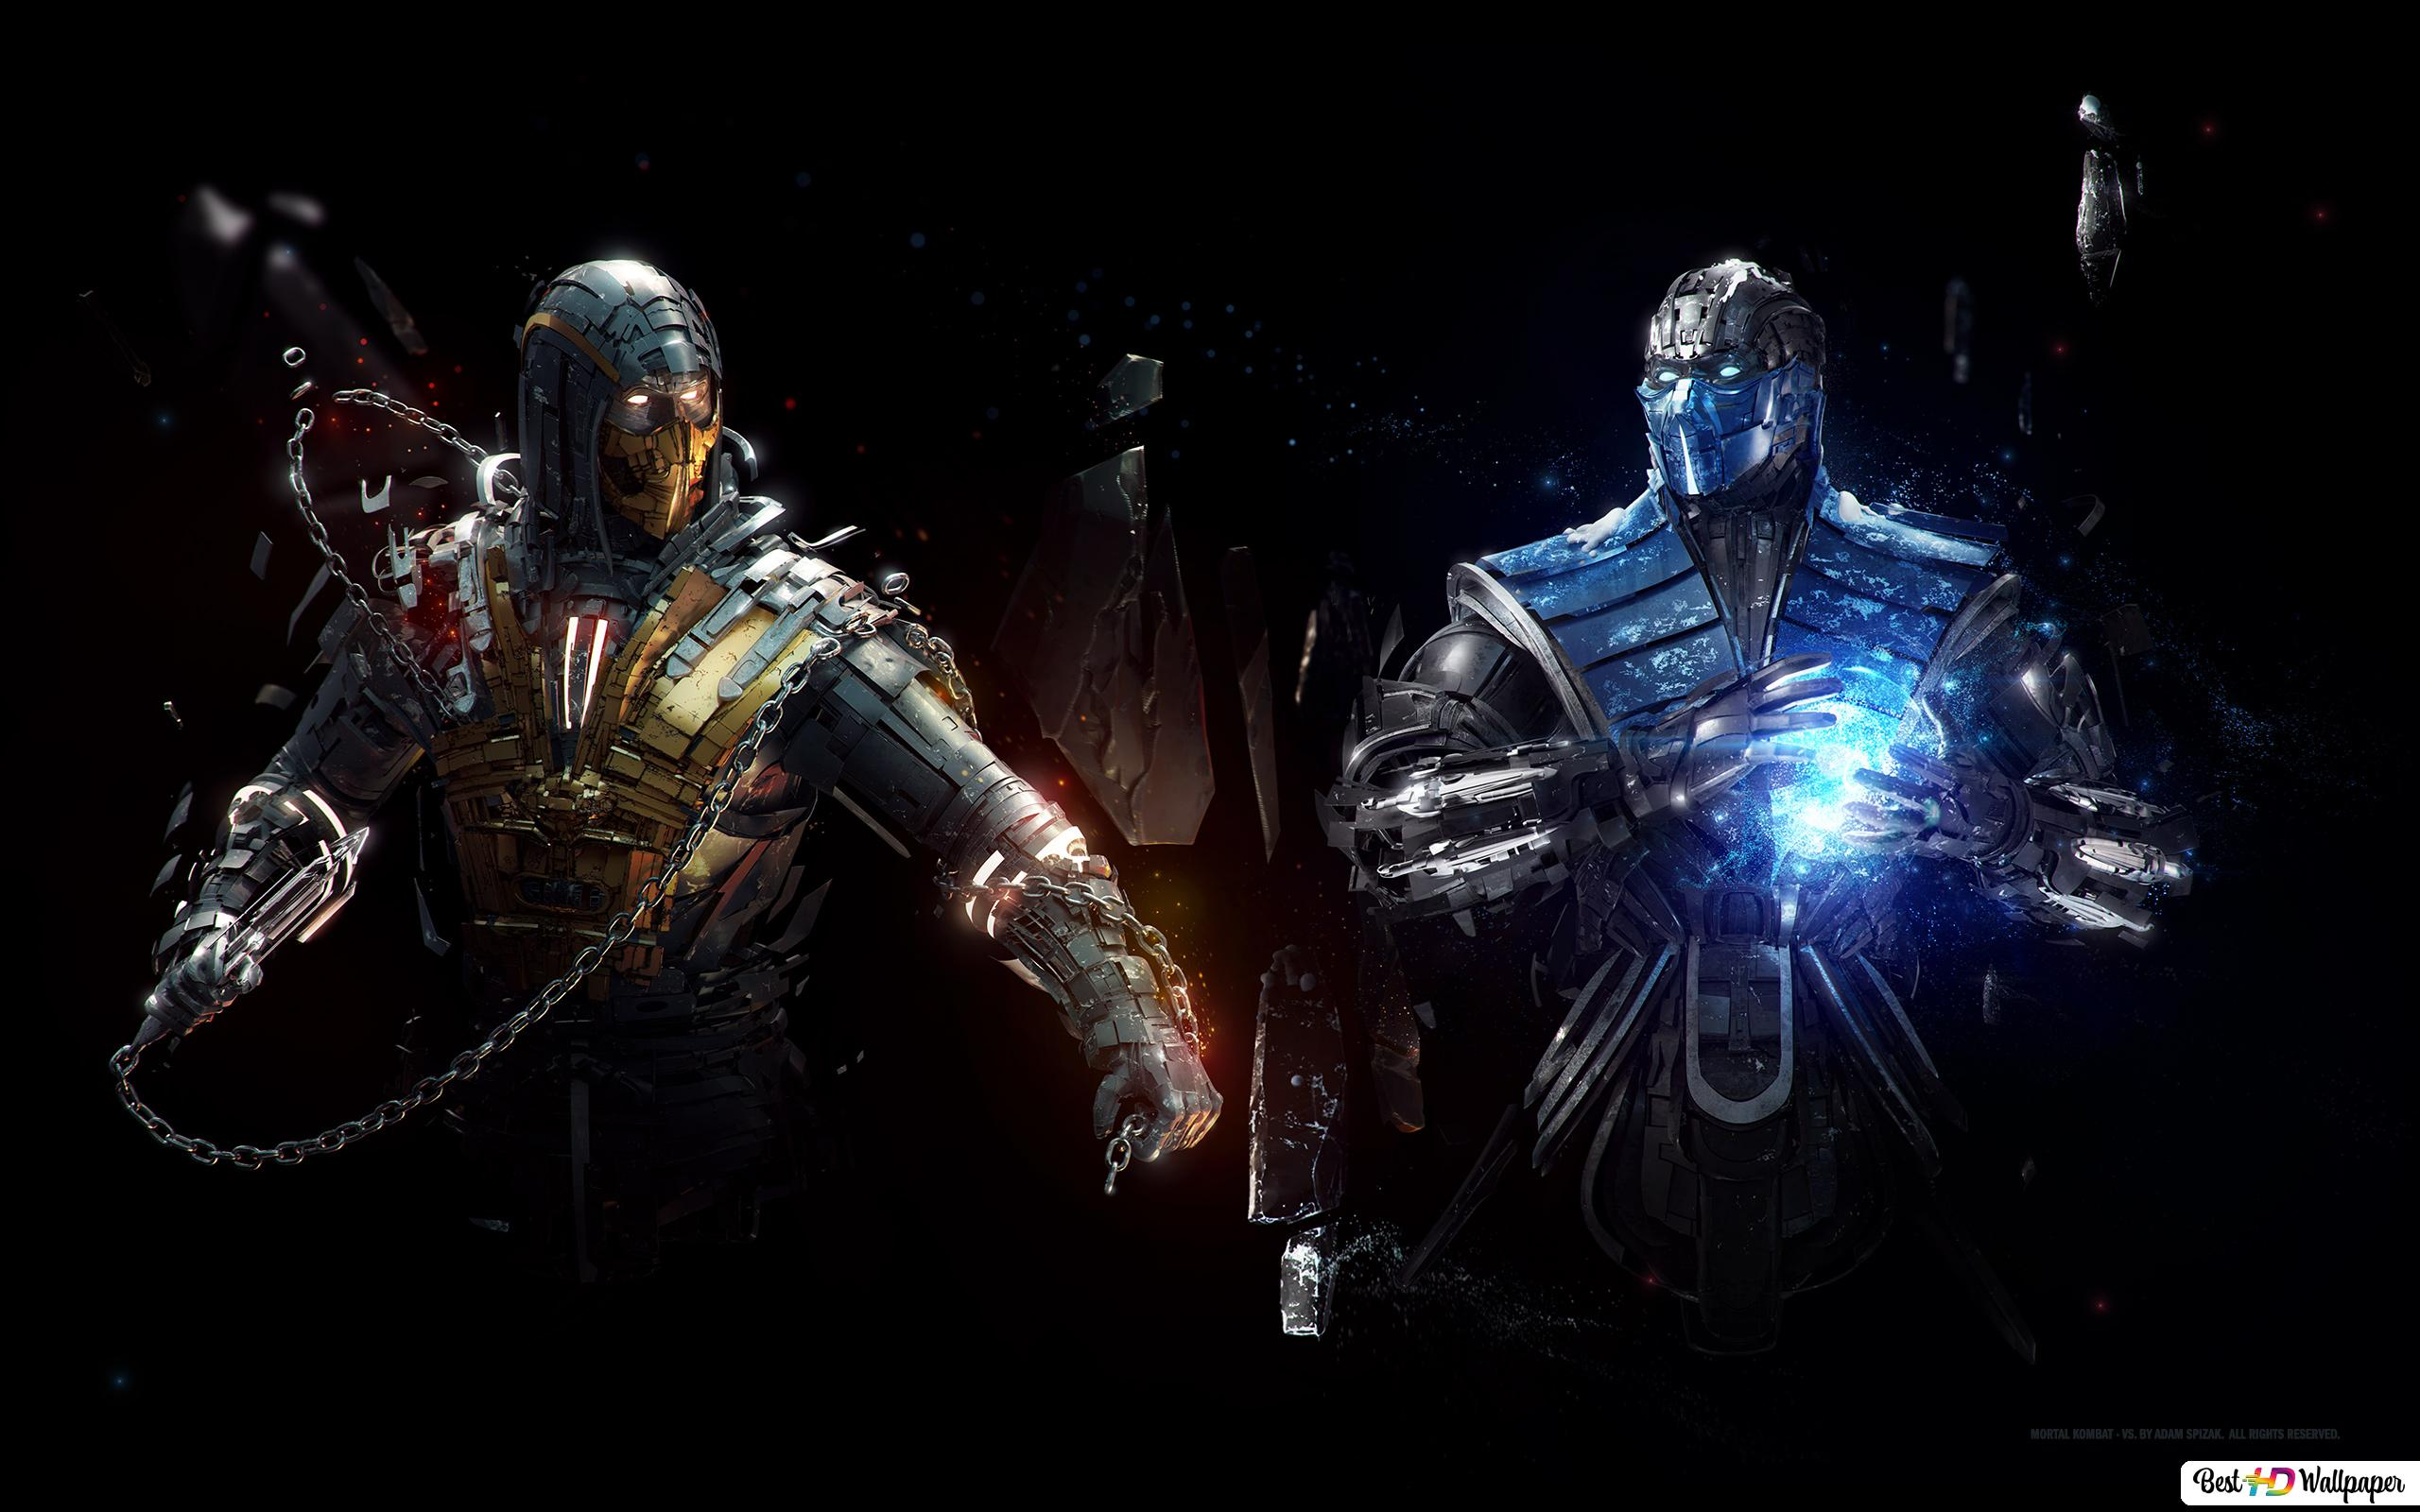 Mortal Kombat X Scorpion Vs Sub Zero Hd Wallpaper Download